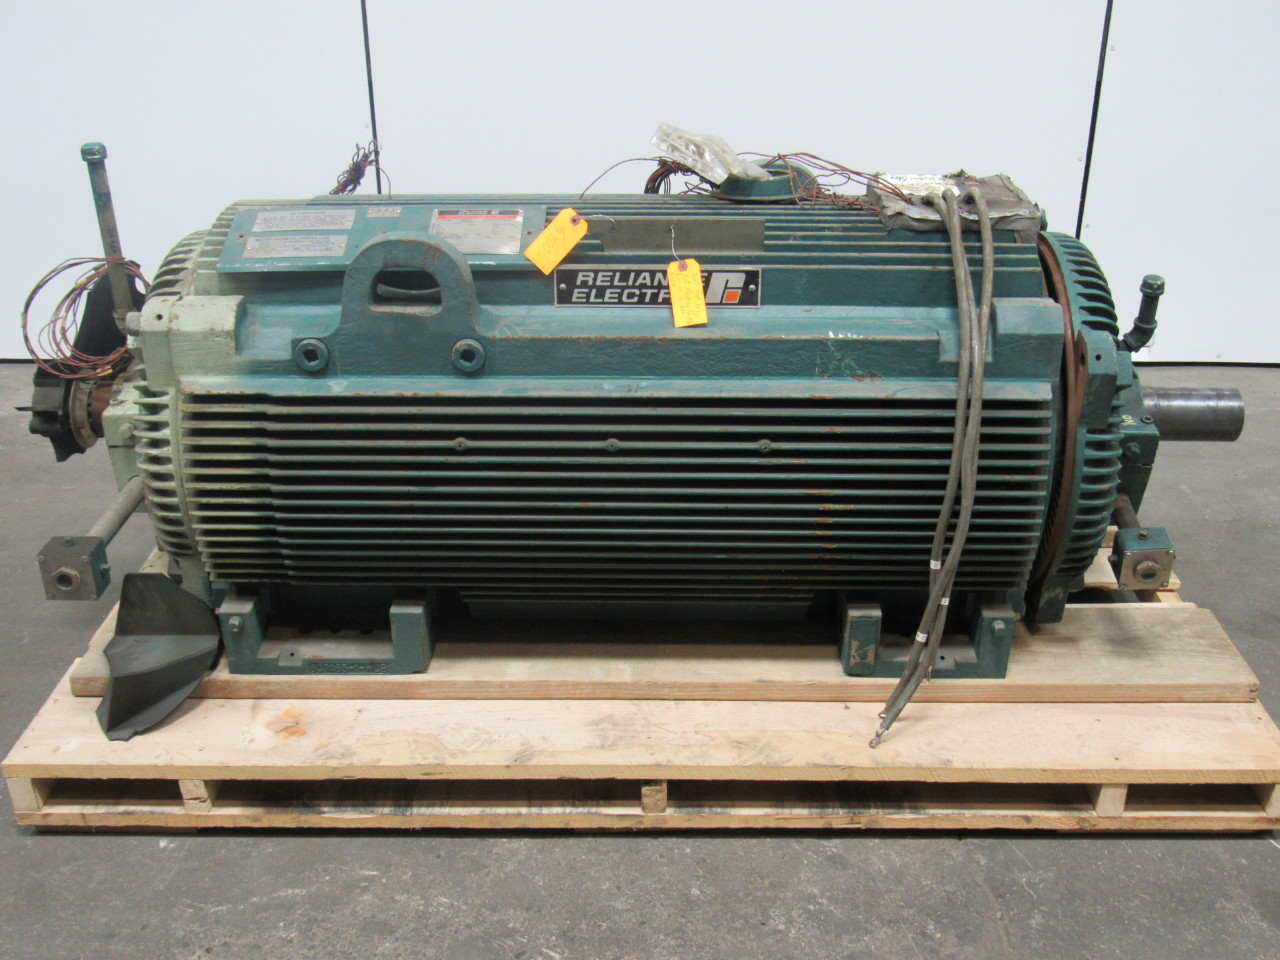 Reliance electric duty master 900 hp ac motor 1791rpm 4000 for Duty master ac motor reliance electric